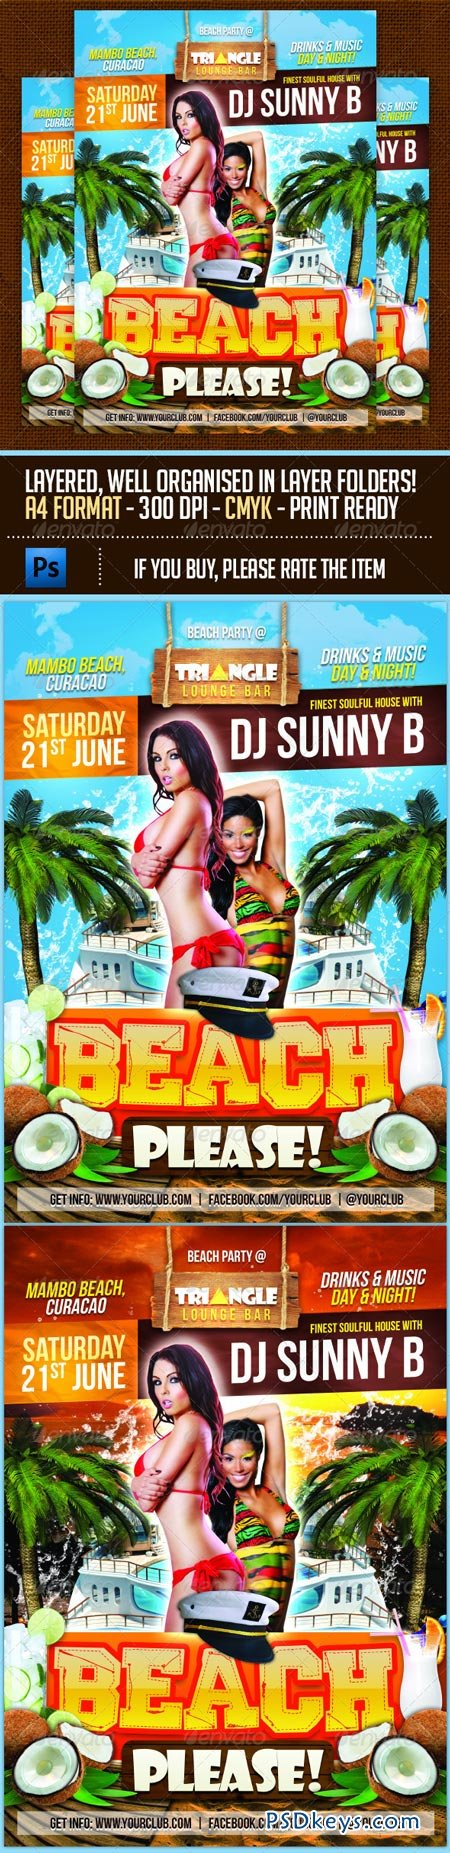 Beach Please Party Flyer Template 6897984